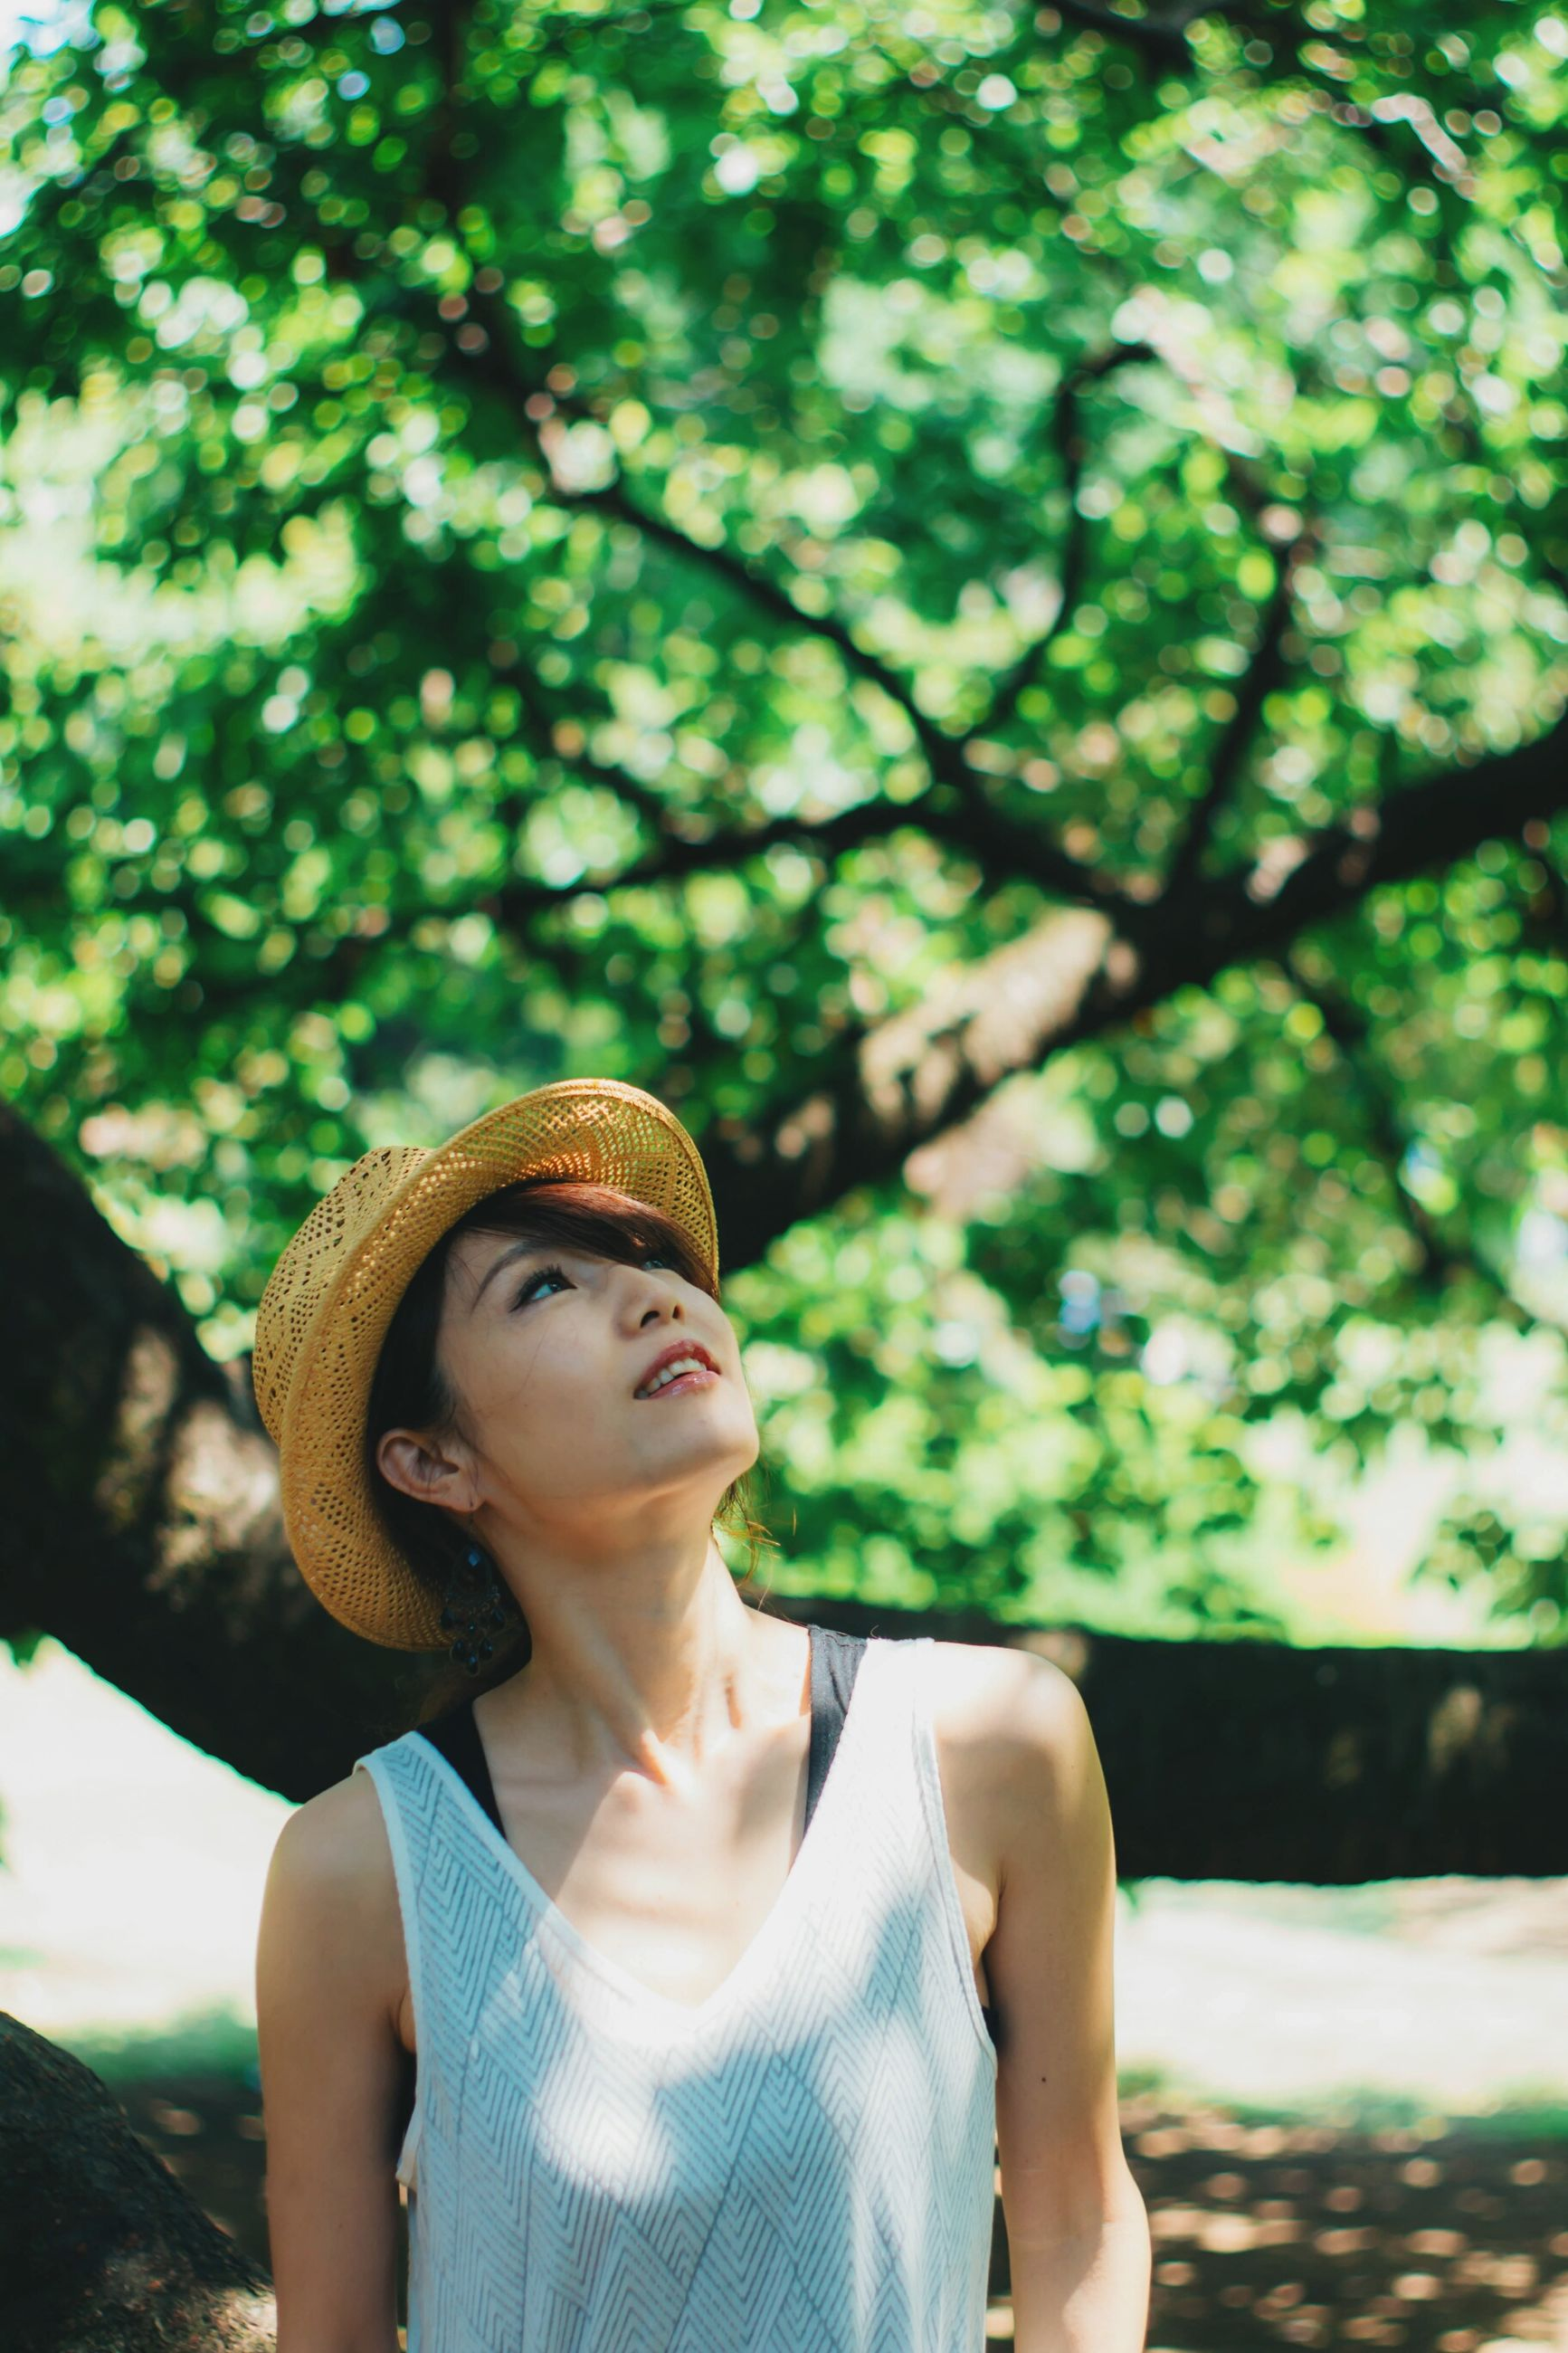 tree, young women, young adult, front view, real people, outdoors, one person, day, nature, leisure activity, lifestyles, focus on foreground, beautiful woman, portrait, beauty in nature, close-up